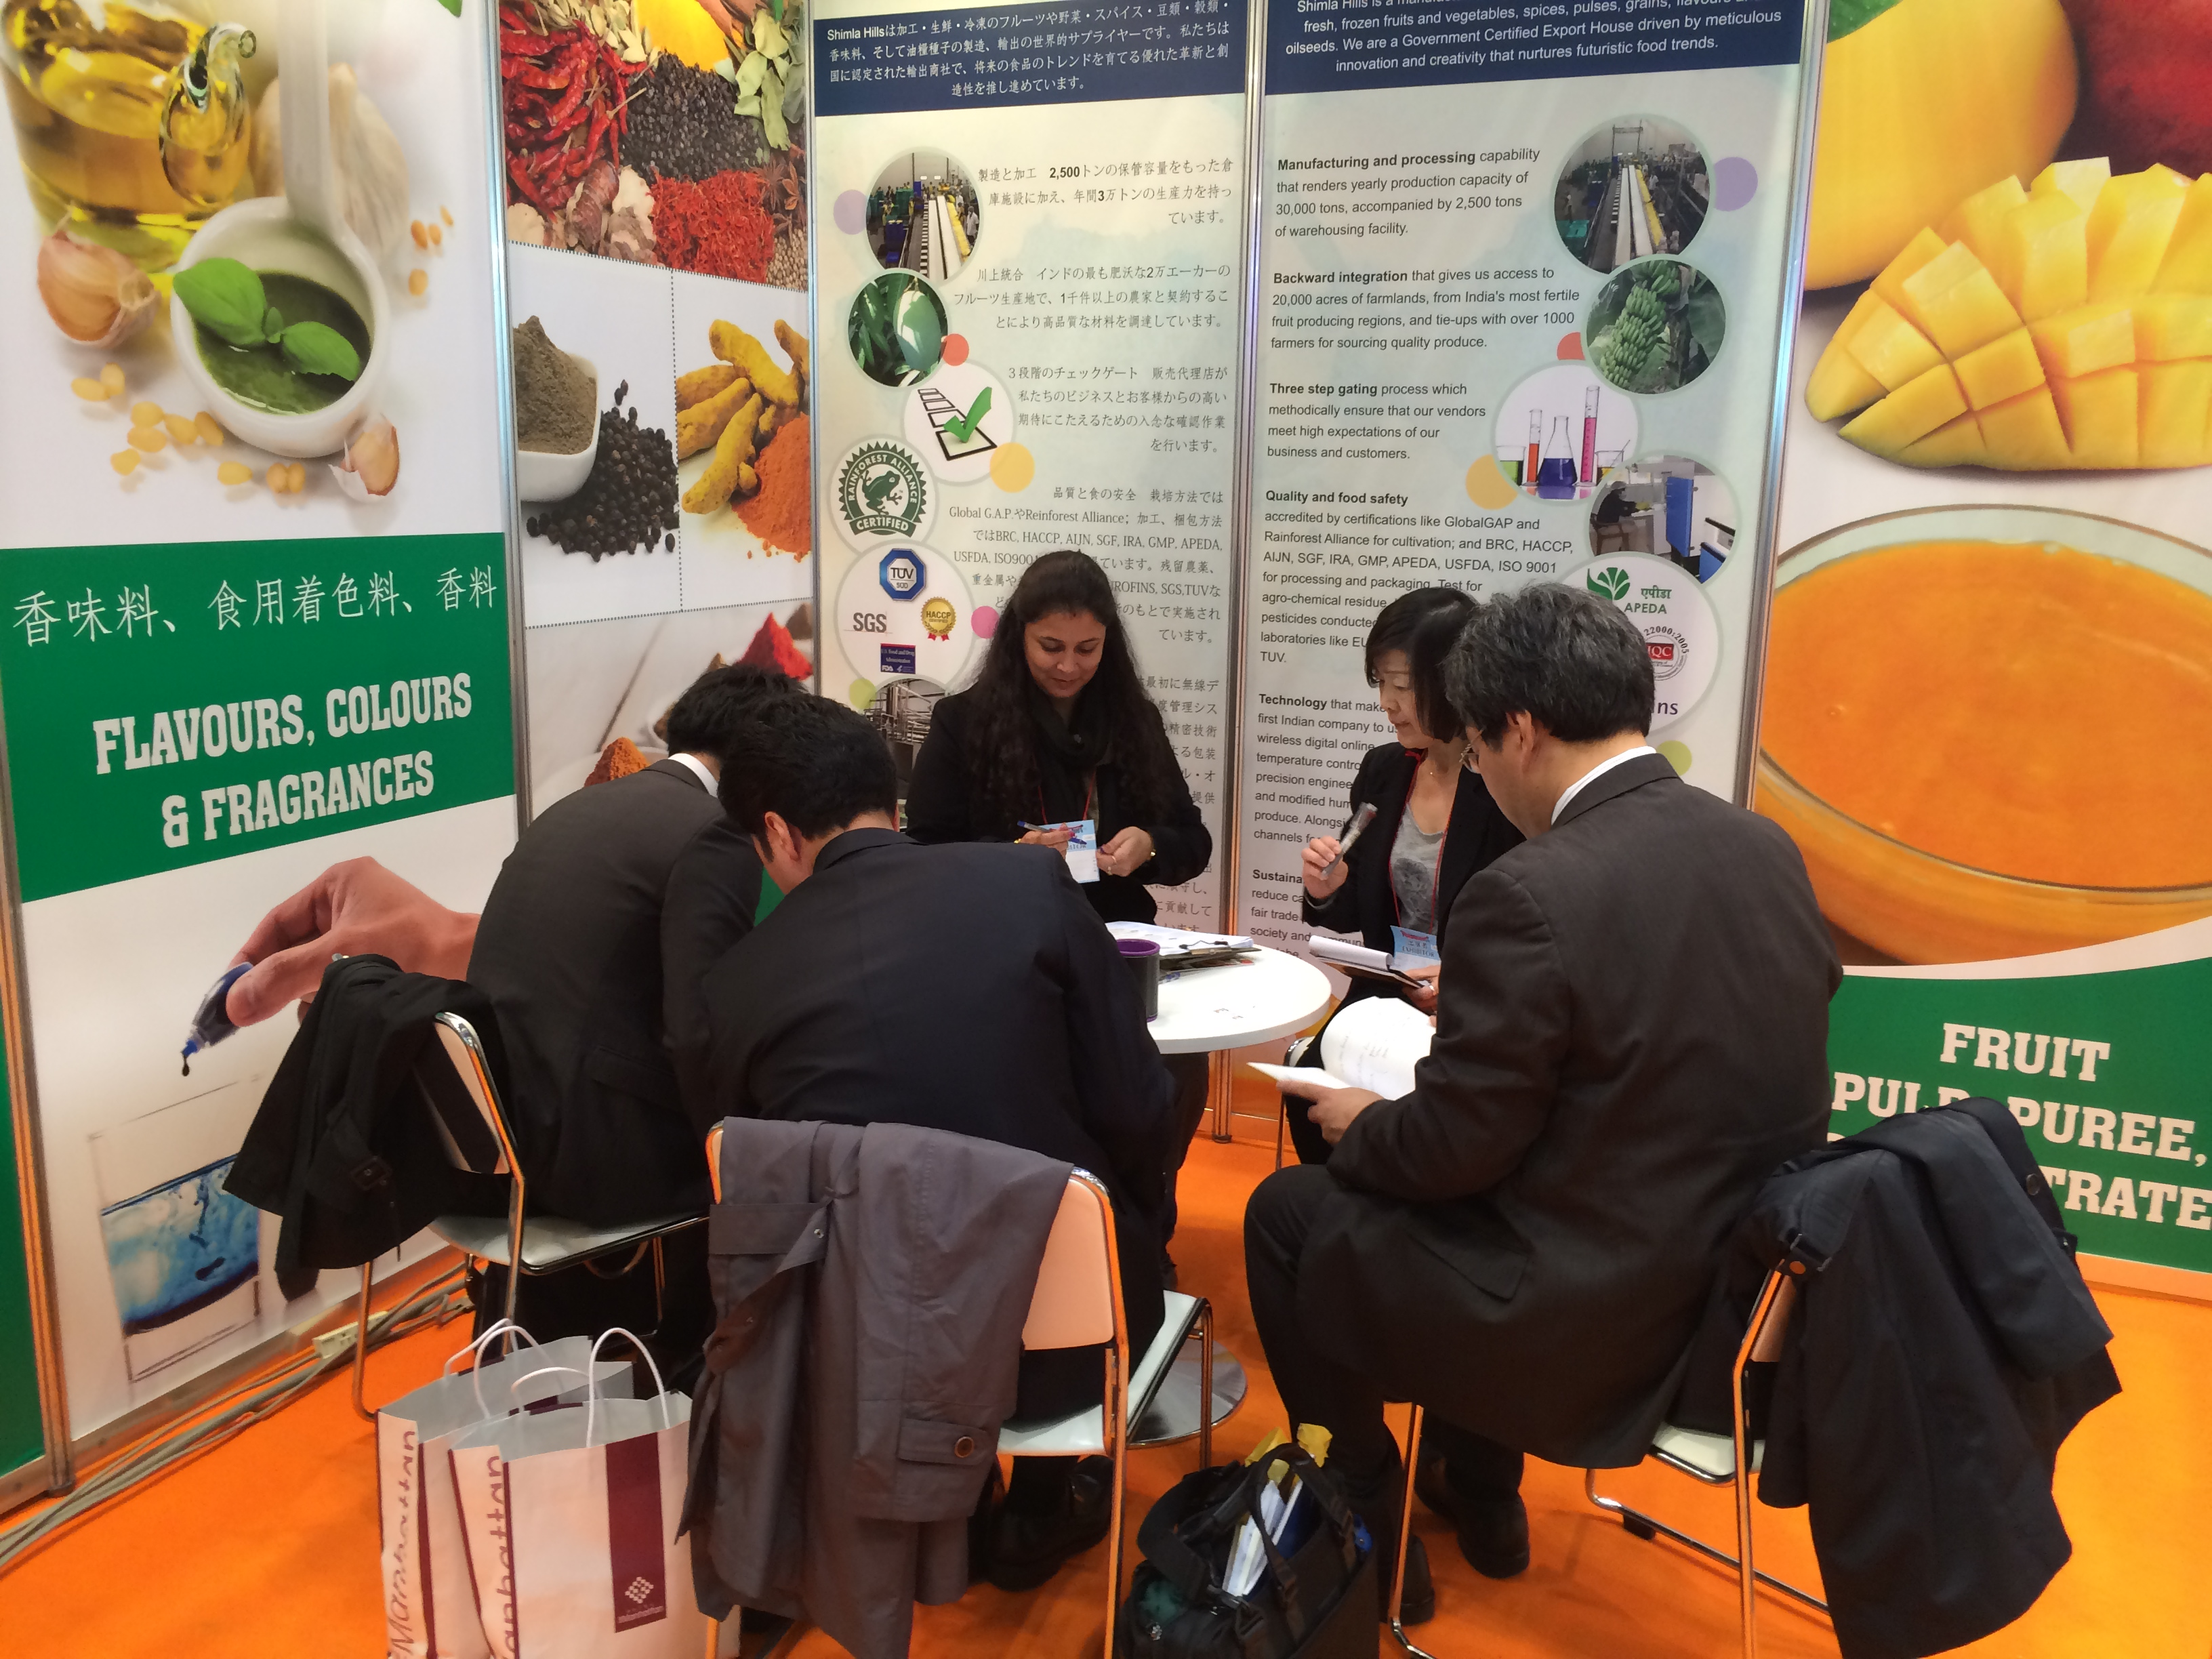 In conversation with Puja Yash Thakur: Foodex Japan 2014